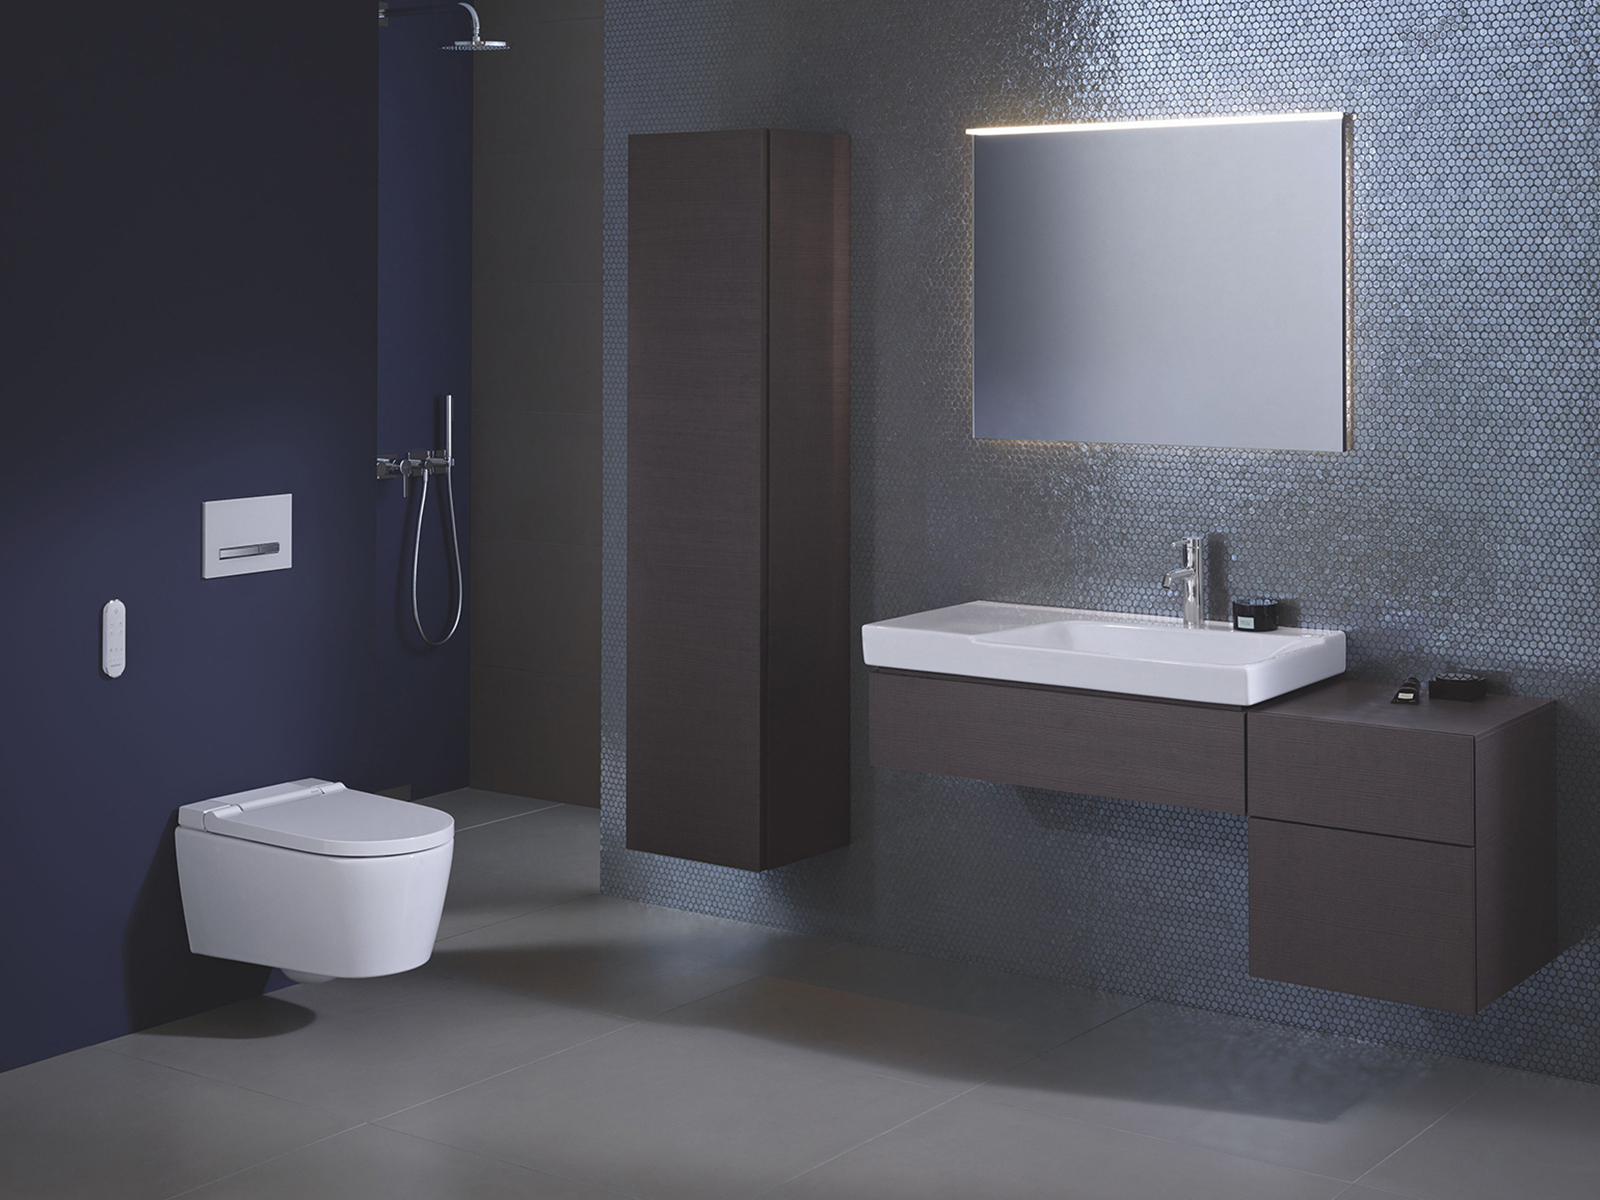 Aquaclean Sela by Geberit.